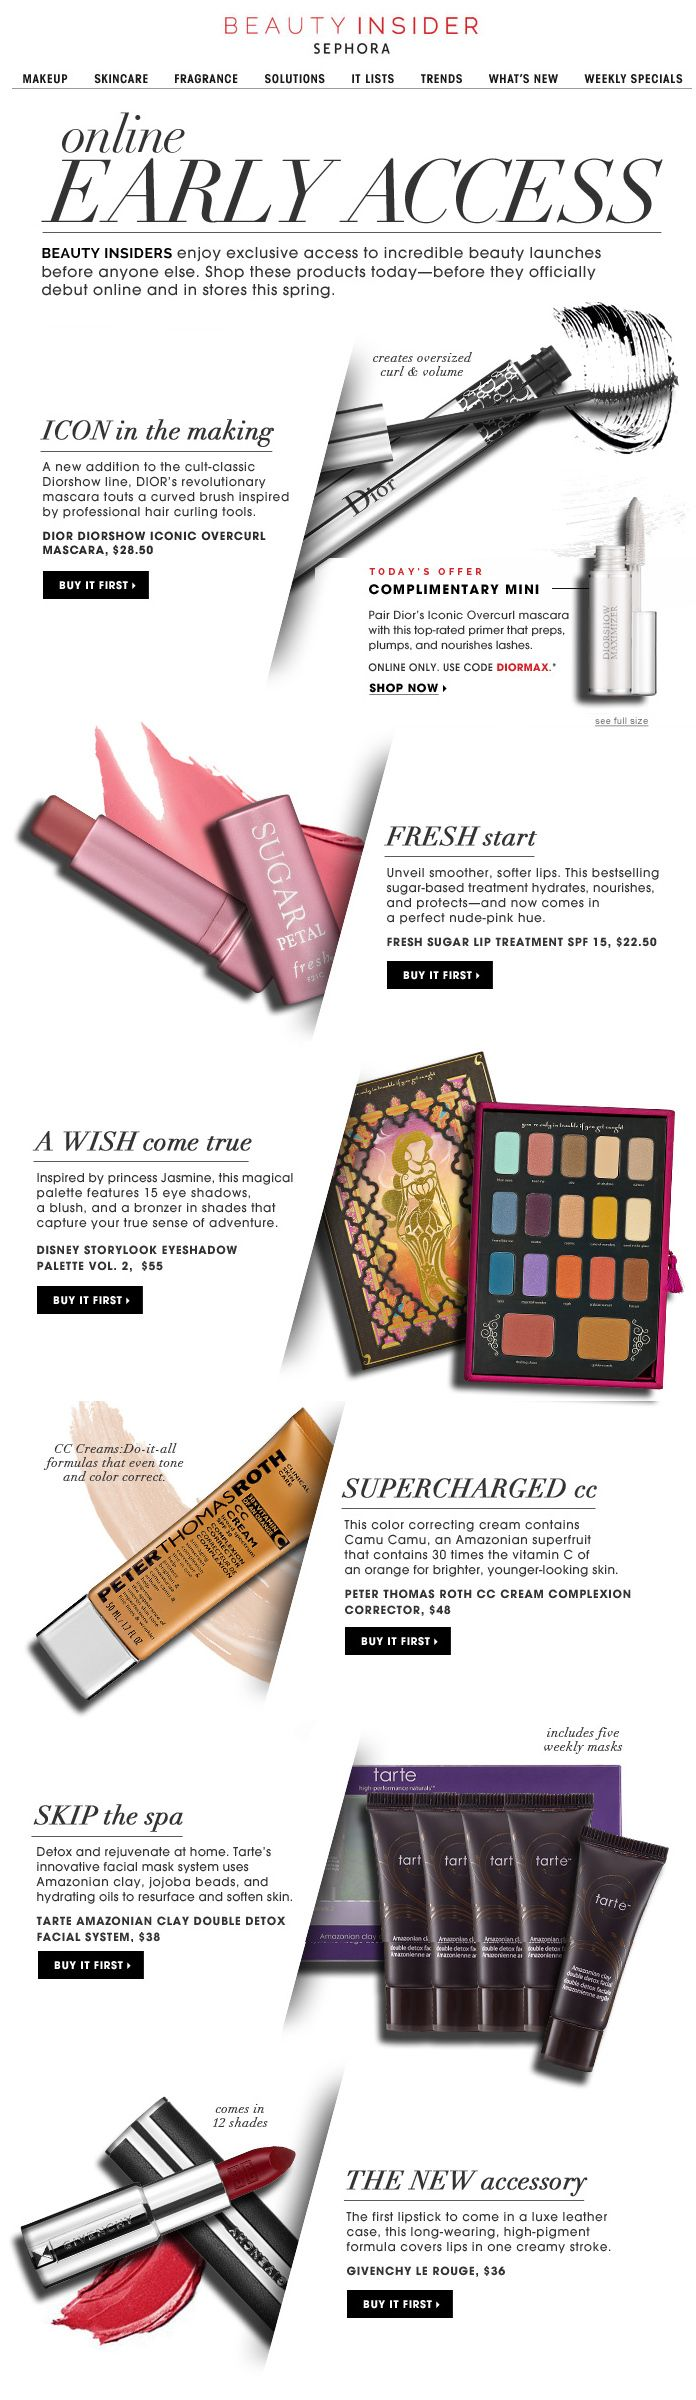 Sephora Beauty Insider Email